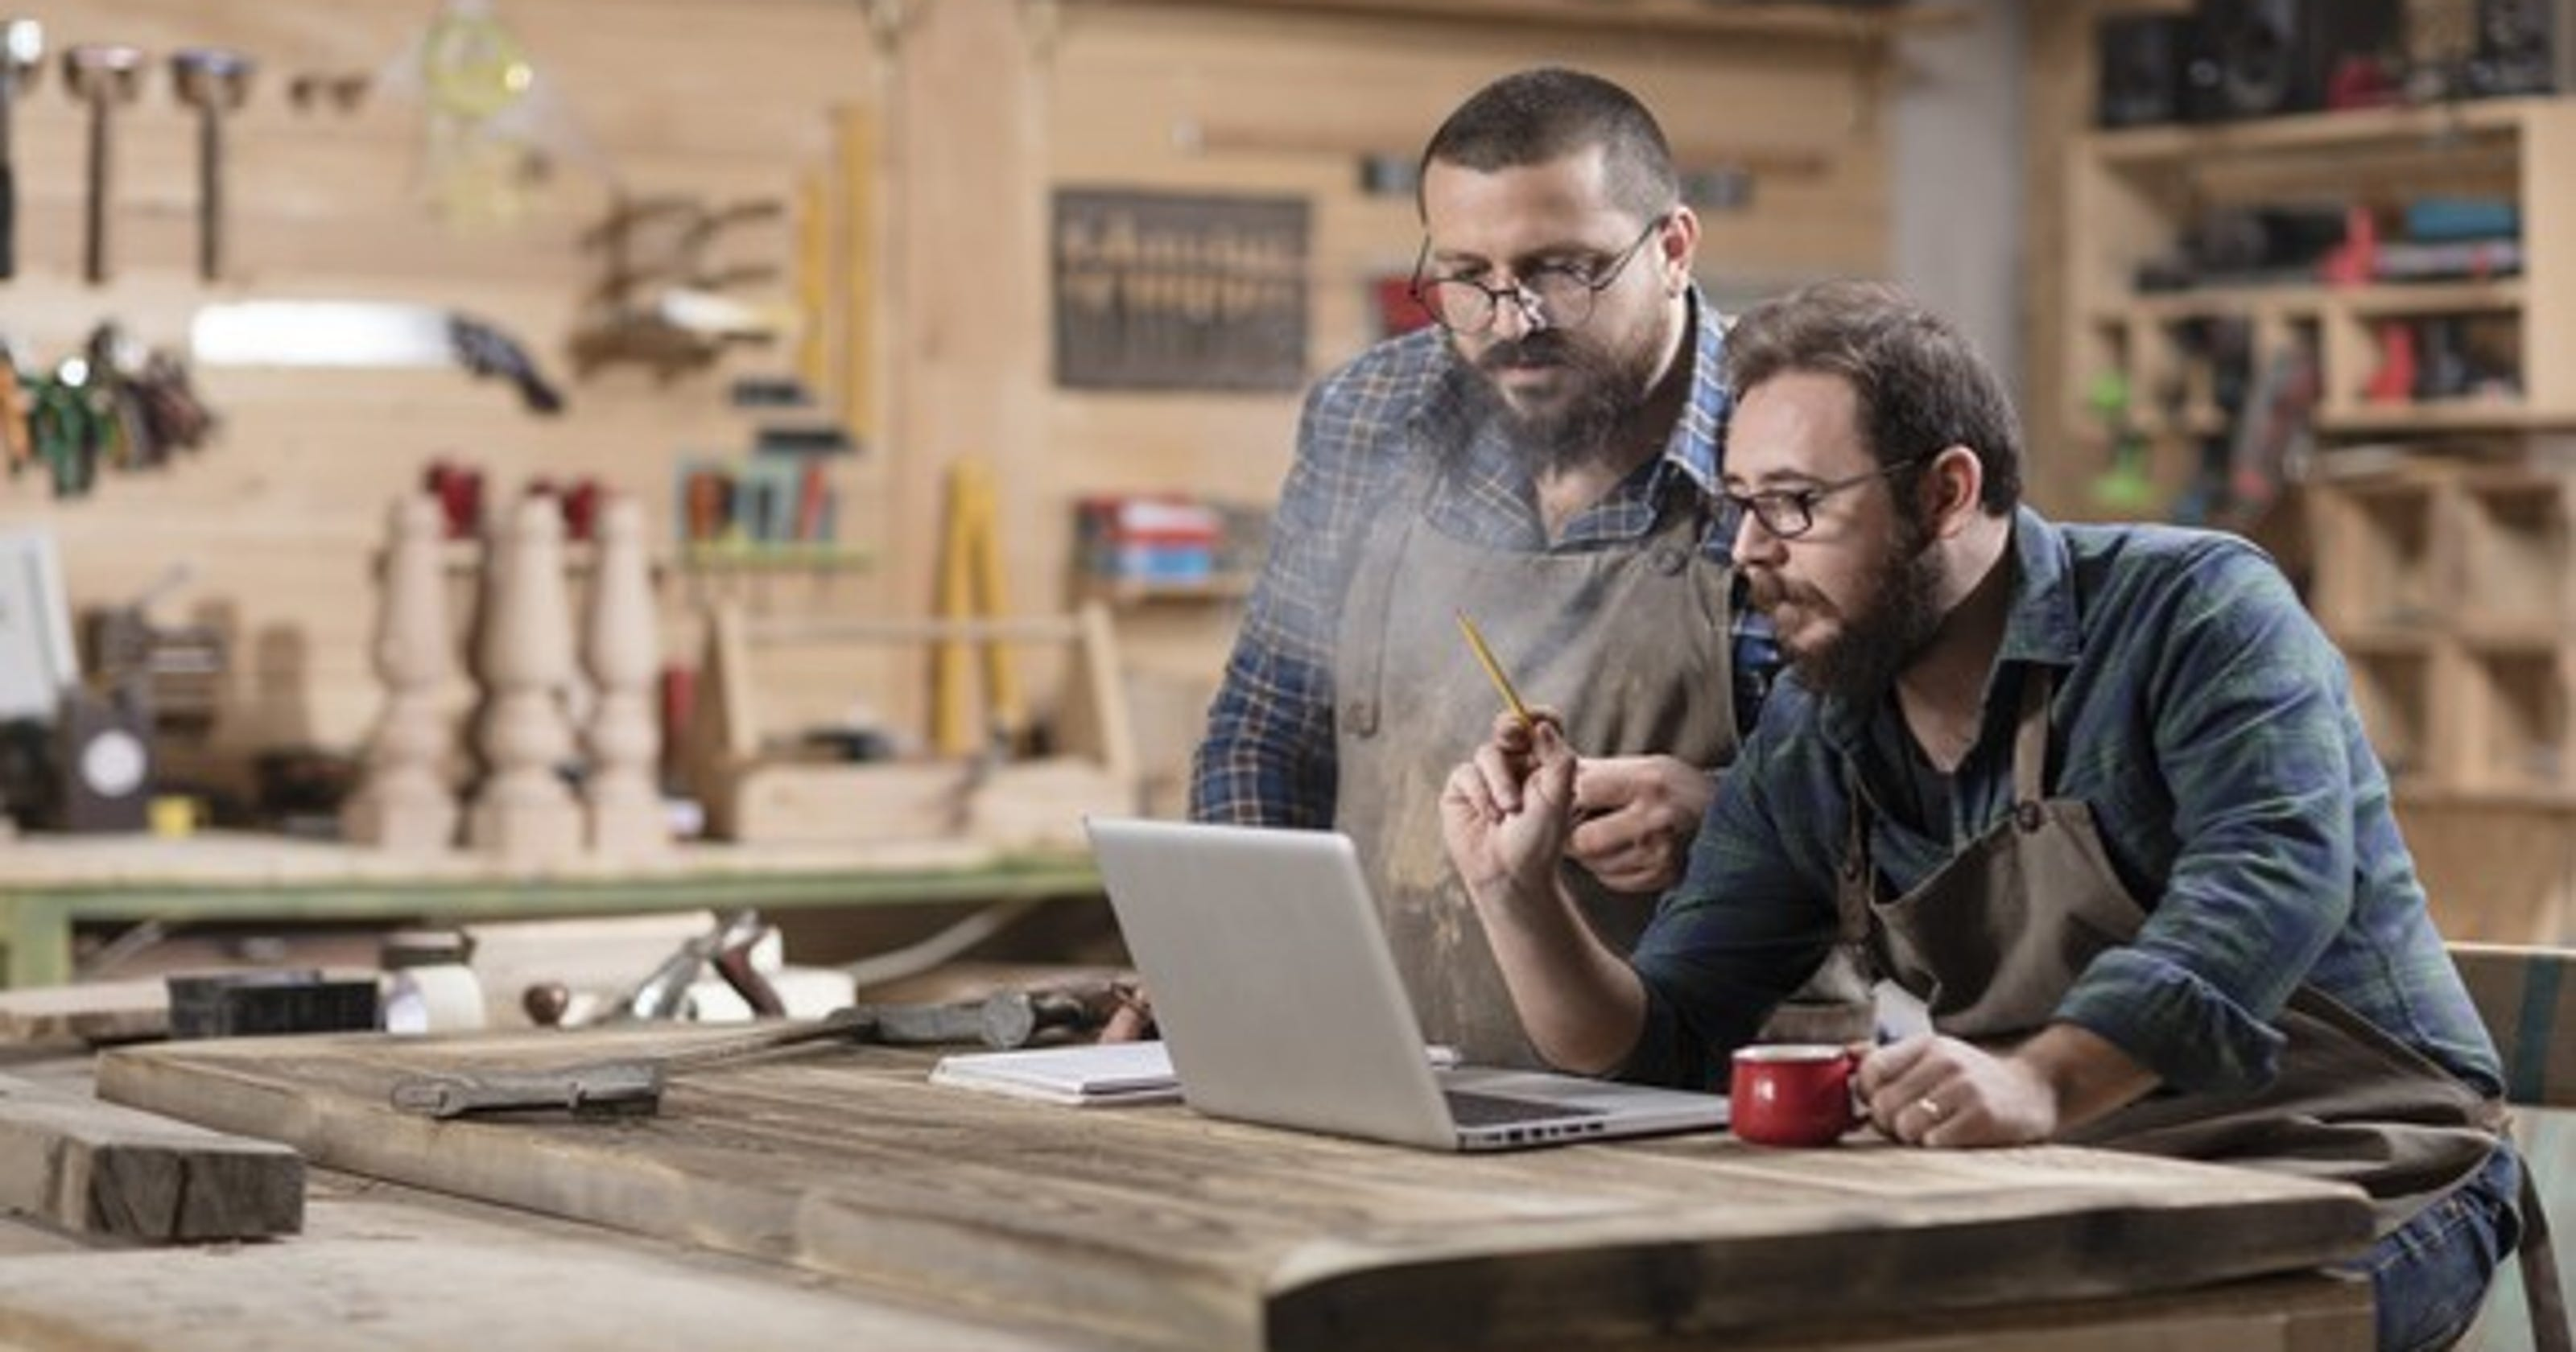 Here are 8 ways small business owners can be smarter about technology